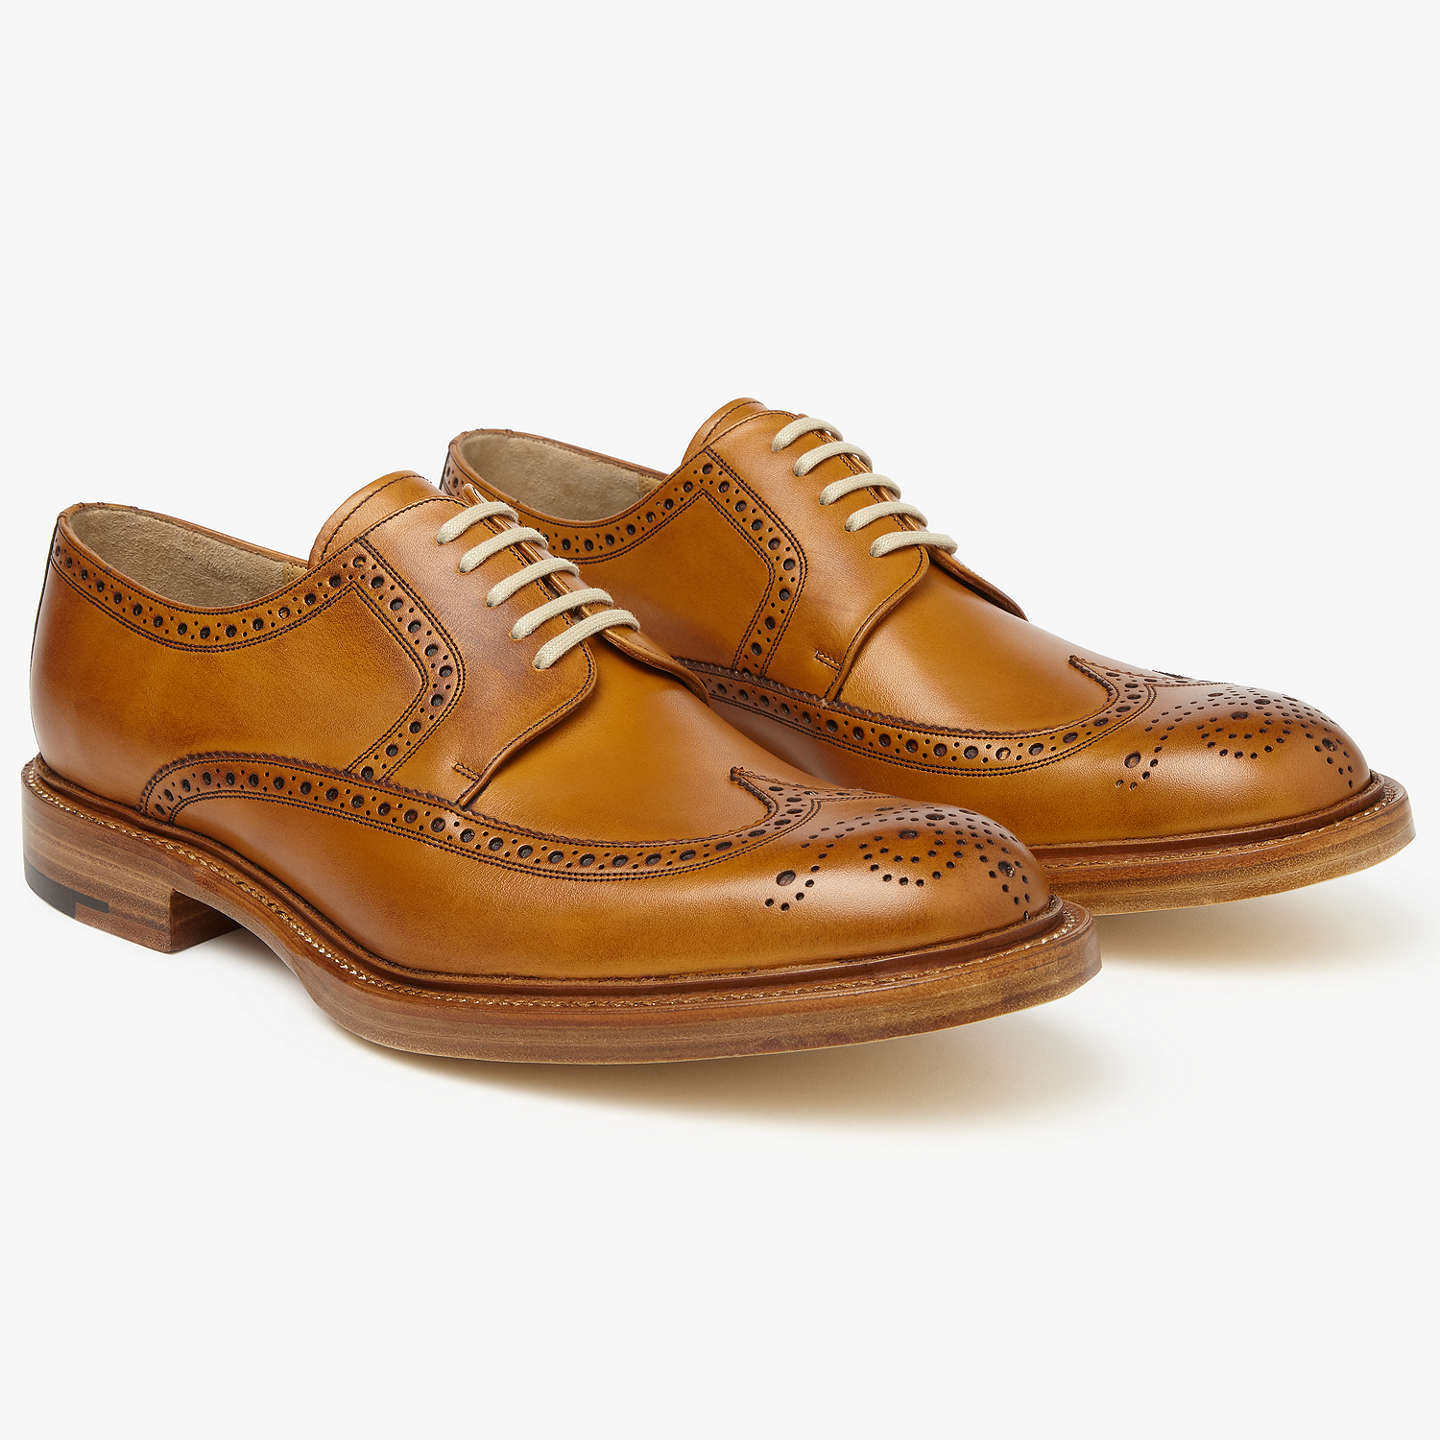 BuyJohn Lewis Made in England Bradenham Derby Brogues, Tan, 7 Online at johnlewis.com